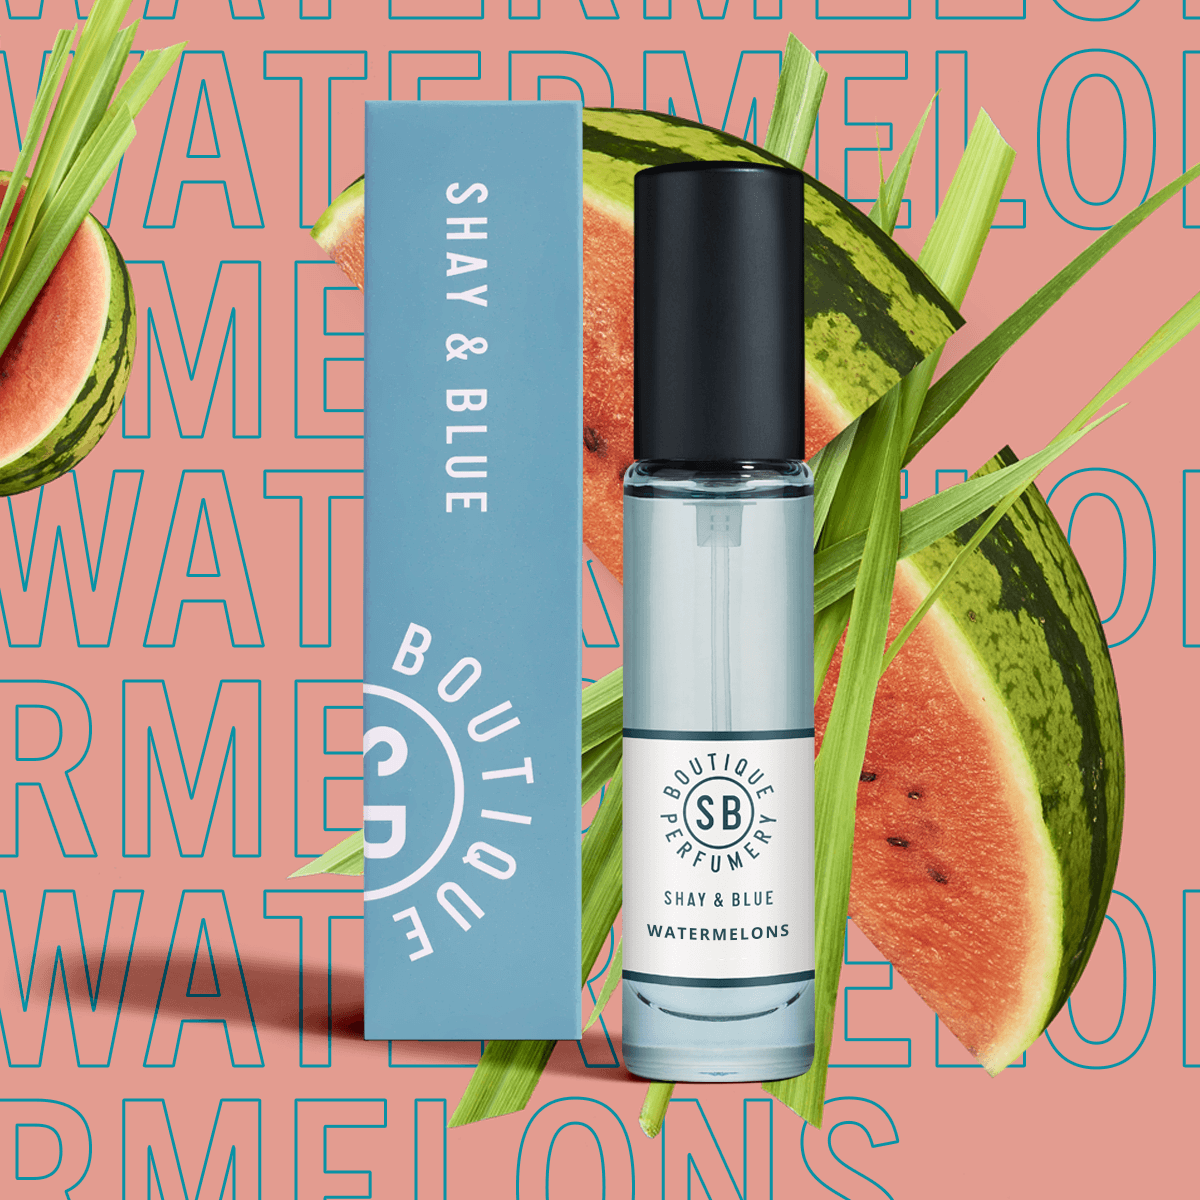 Watermelons Fragrance 10ml | Watermelon freshness with green mandarin and cut grass. | Clean All Gender Fragrance | Shay & Blue